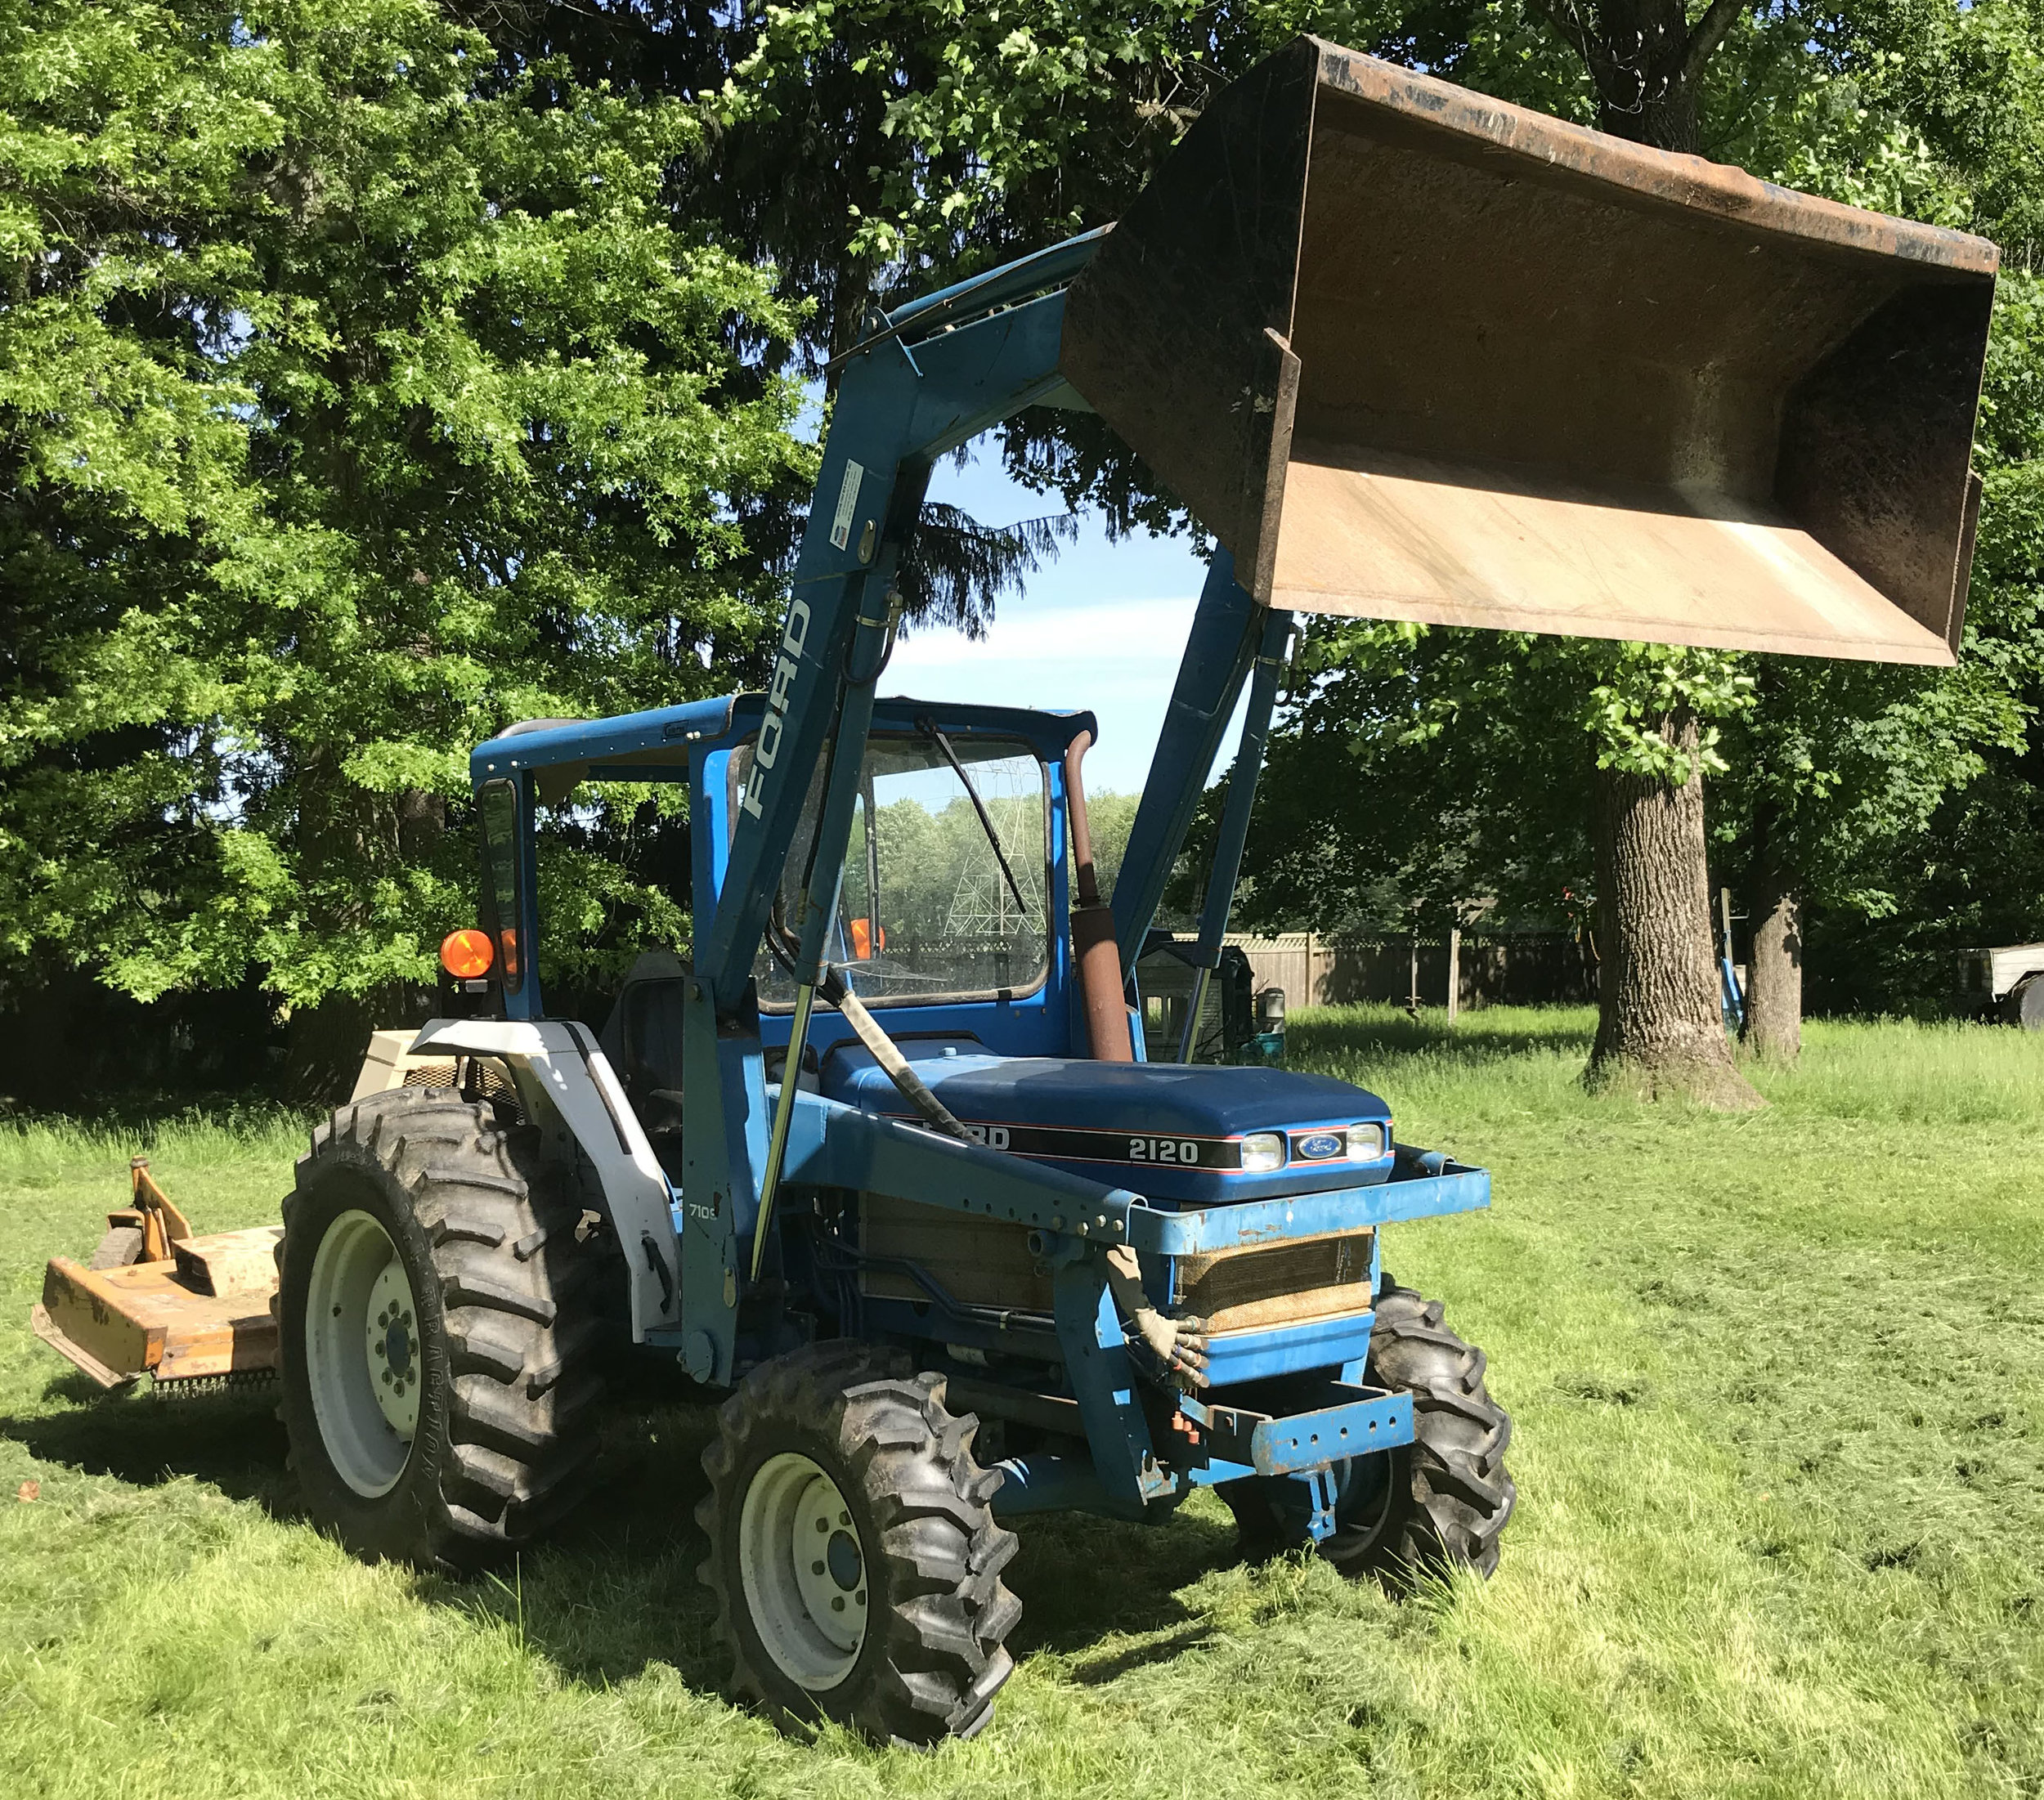 1990/1991  Ford 2120 Compact Utility Tractor  : approx. 860 hrs, 4 cylinder diesel engine, 12 x 12 transmission, 4 wheel drive, hydraulics, 3 pt. hitch, PTO, ROPS, Model 7109 front end loader, Curtis cab., 14.9–26 rear tires, 9.5-16 front tires, Model #AV413P, tractor serial #UV24193.